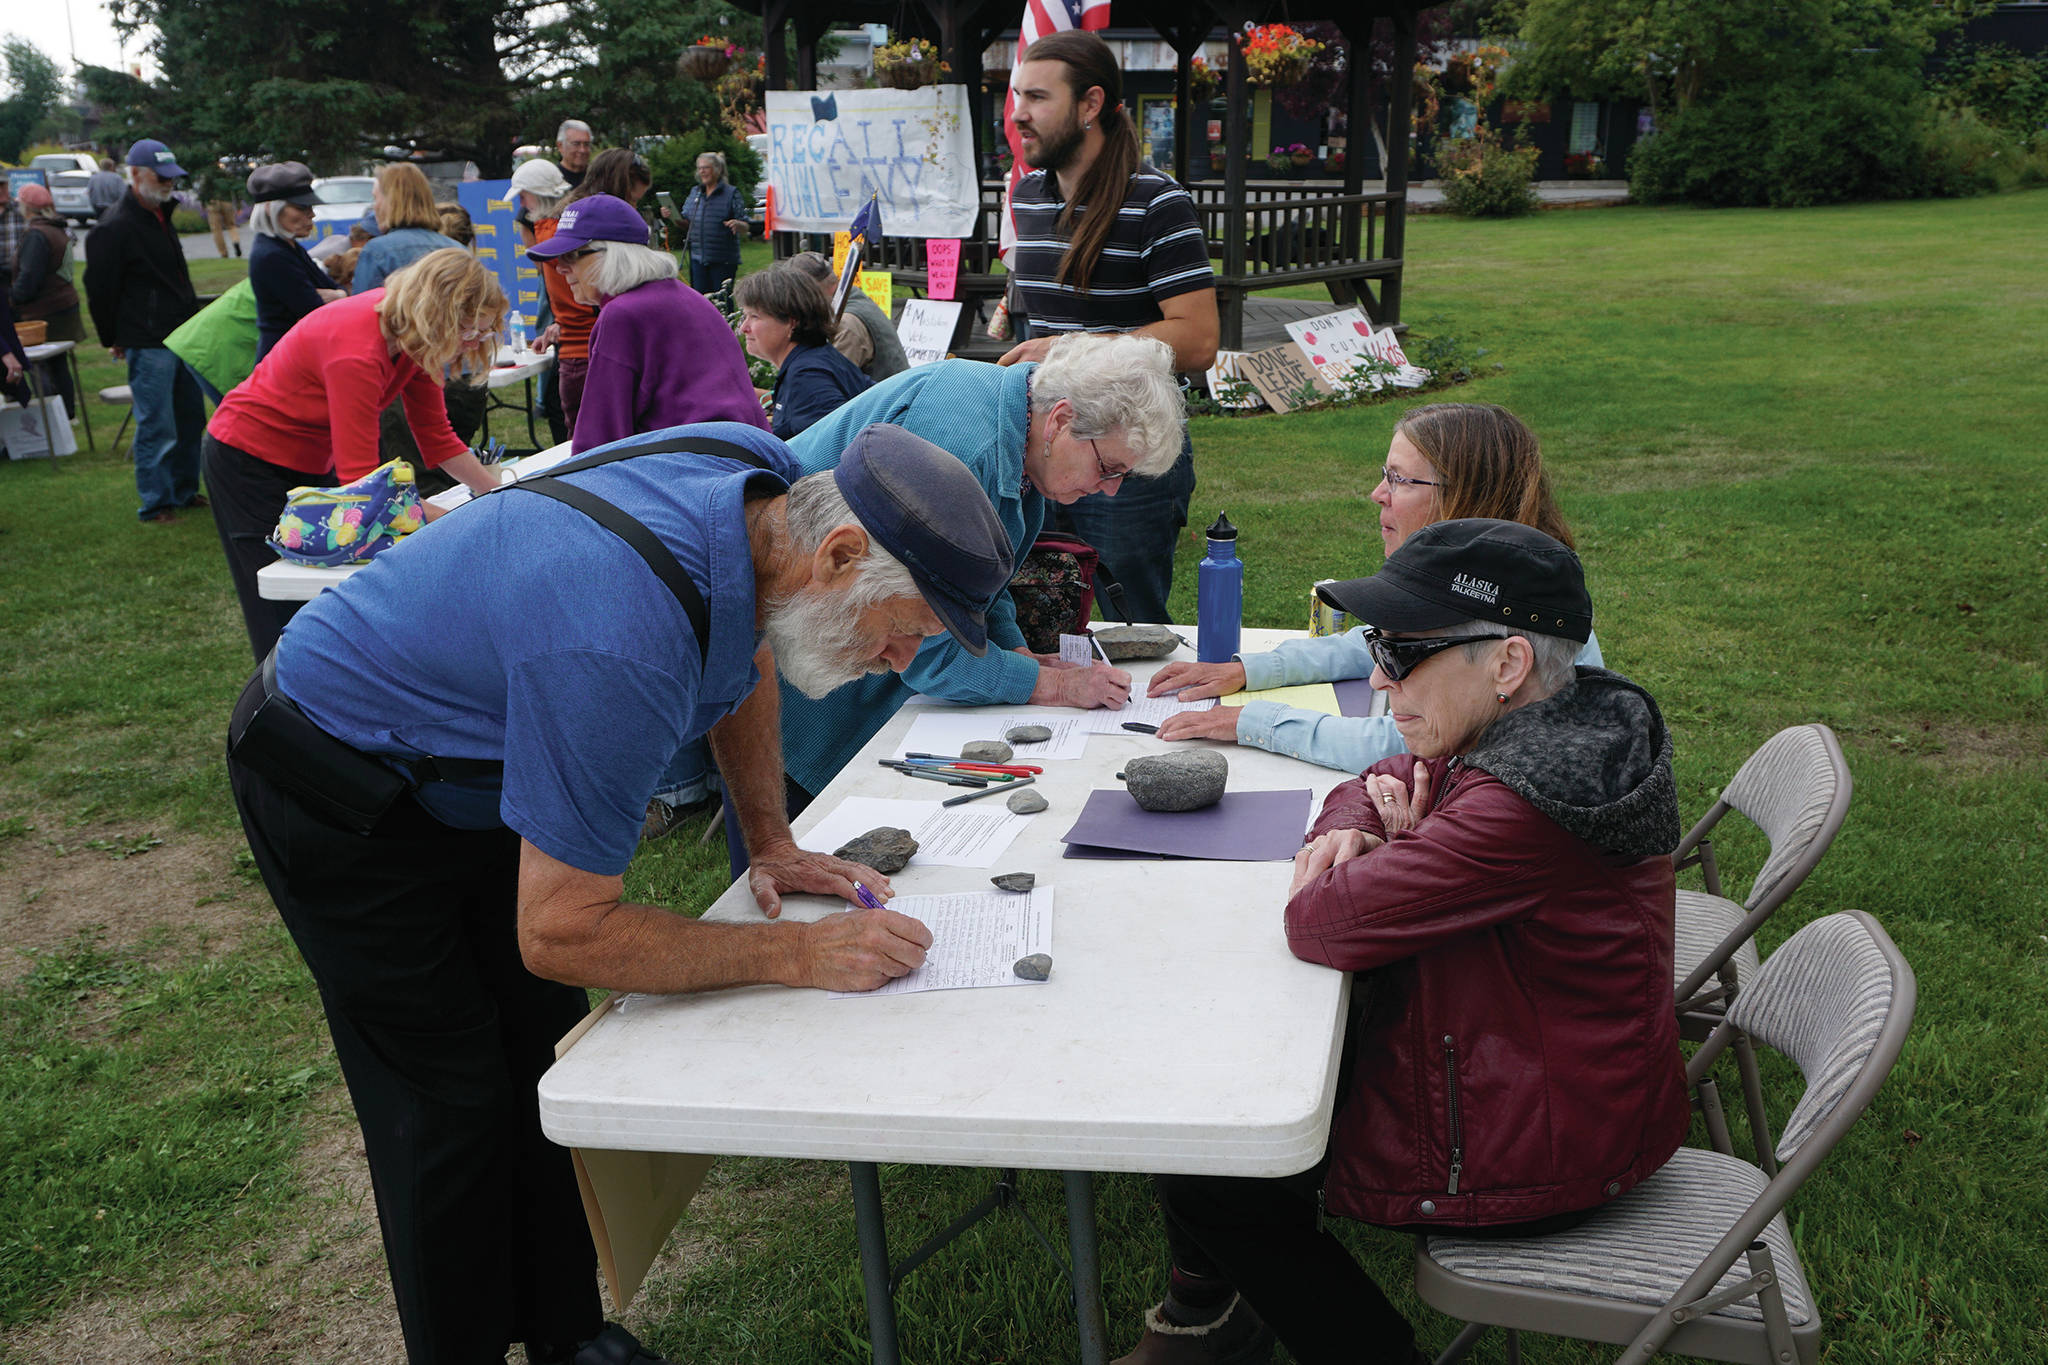 Recall Dunleavy organizers Ann Keffer, right, in hat, and Pat Cue, behind Keffer, take signatures at a Recall Dunleavy rally held on Aug. 1, 2019, at WKFL Park in Homer, Alaska. At left, former Homer Rep. Paul Seaton, NP-Homer, signs a form. Seaton lost to Rep. Sarah Vance, R-Homer, in the general election. (Photo by Michael Armstrong)